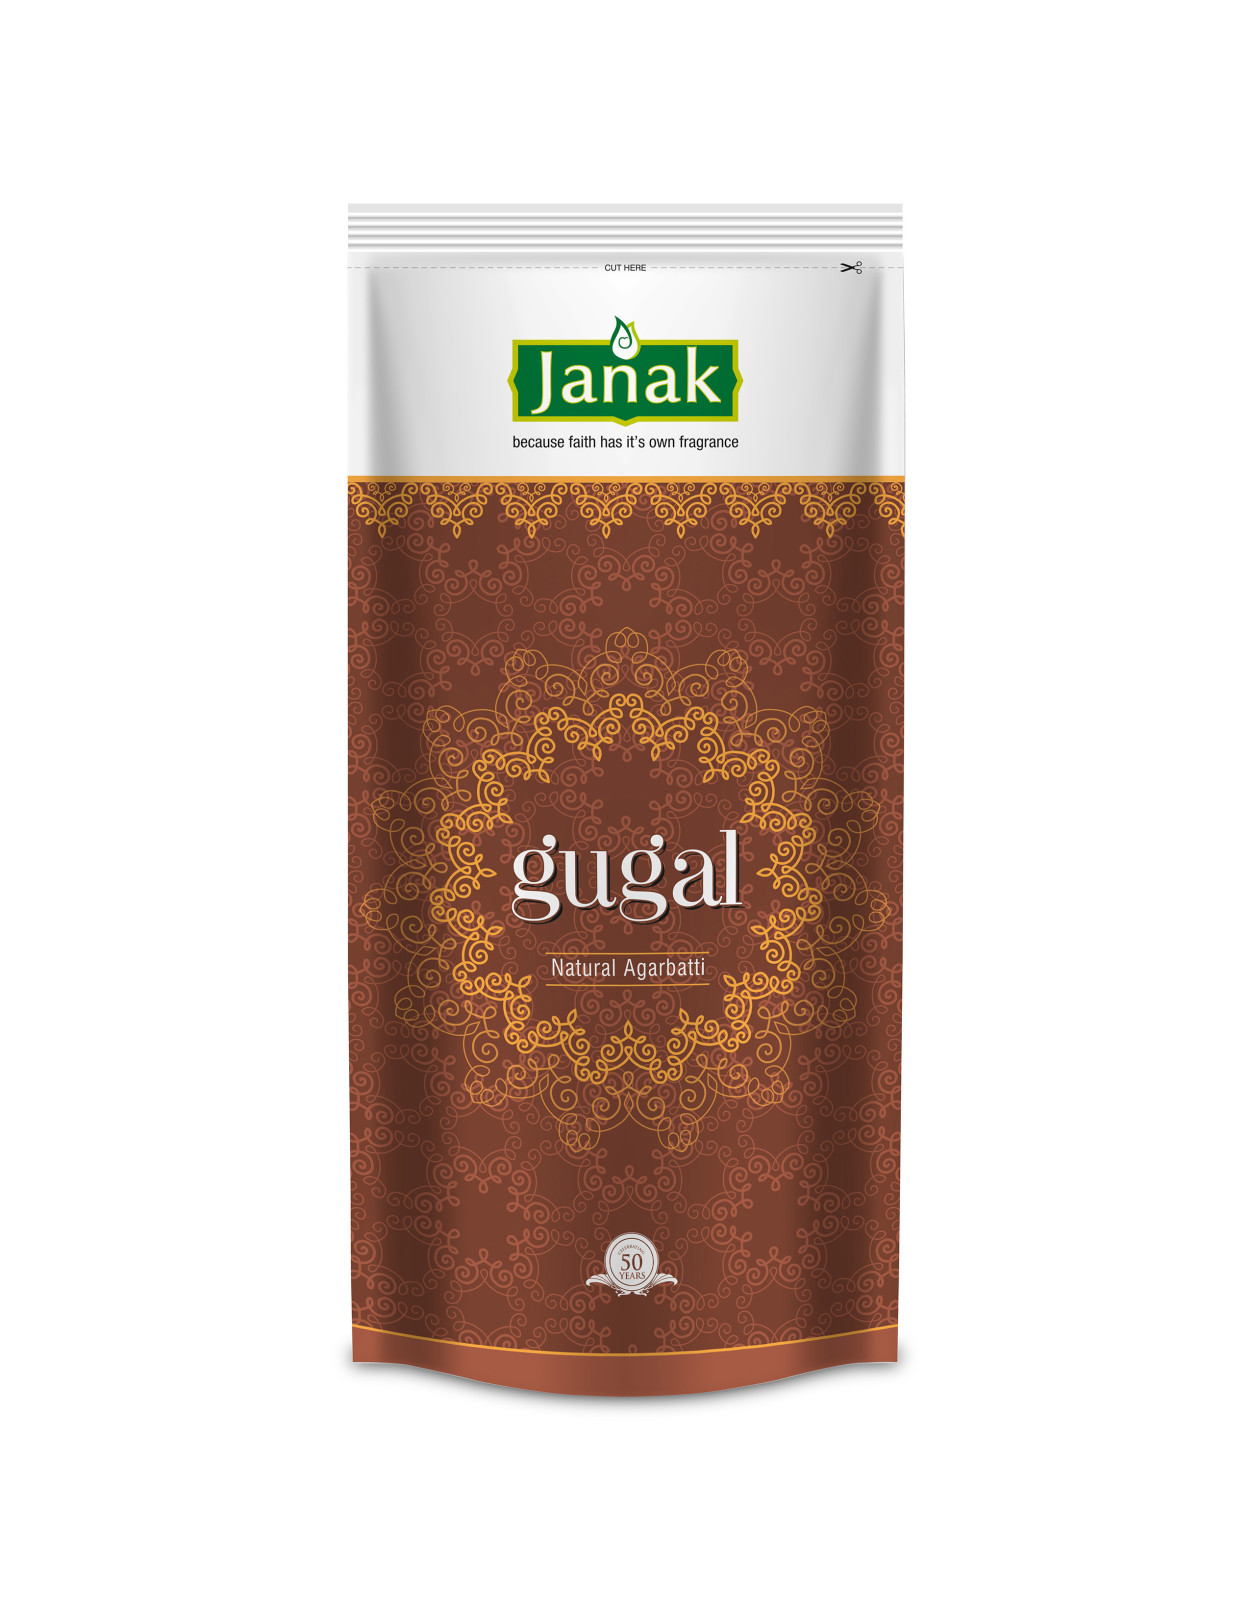 Janak-Gugal-new-Design-3D.jpg